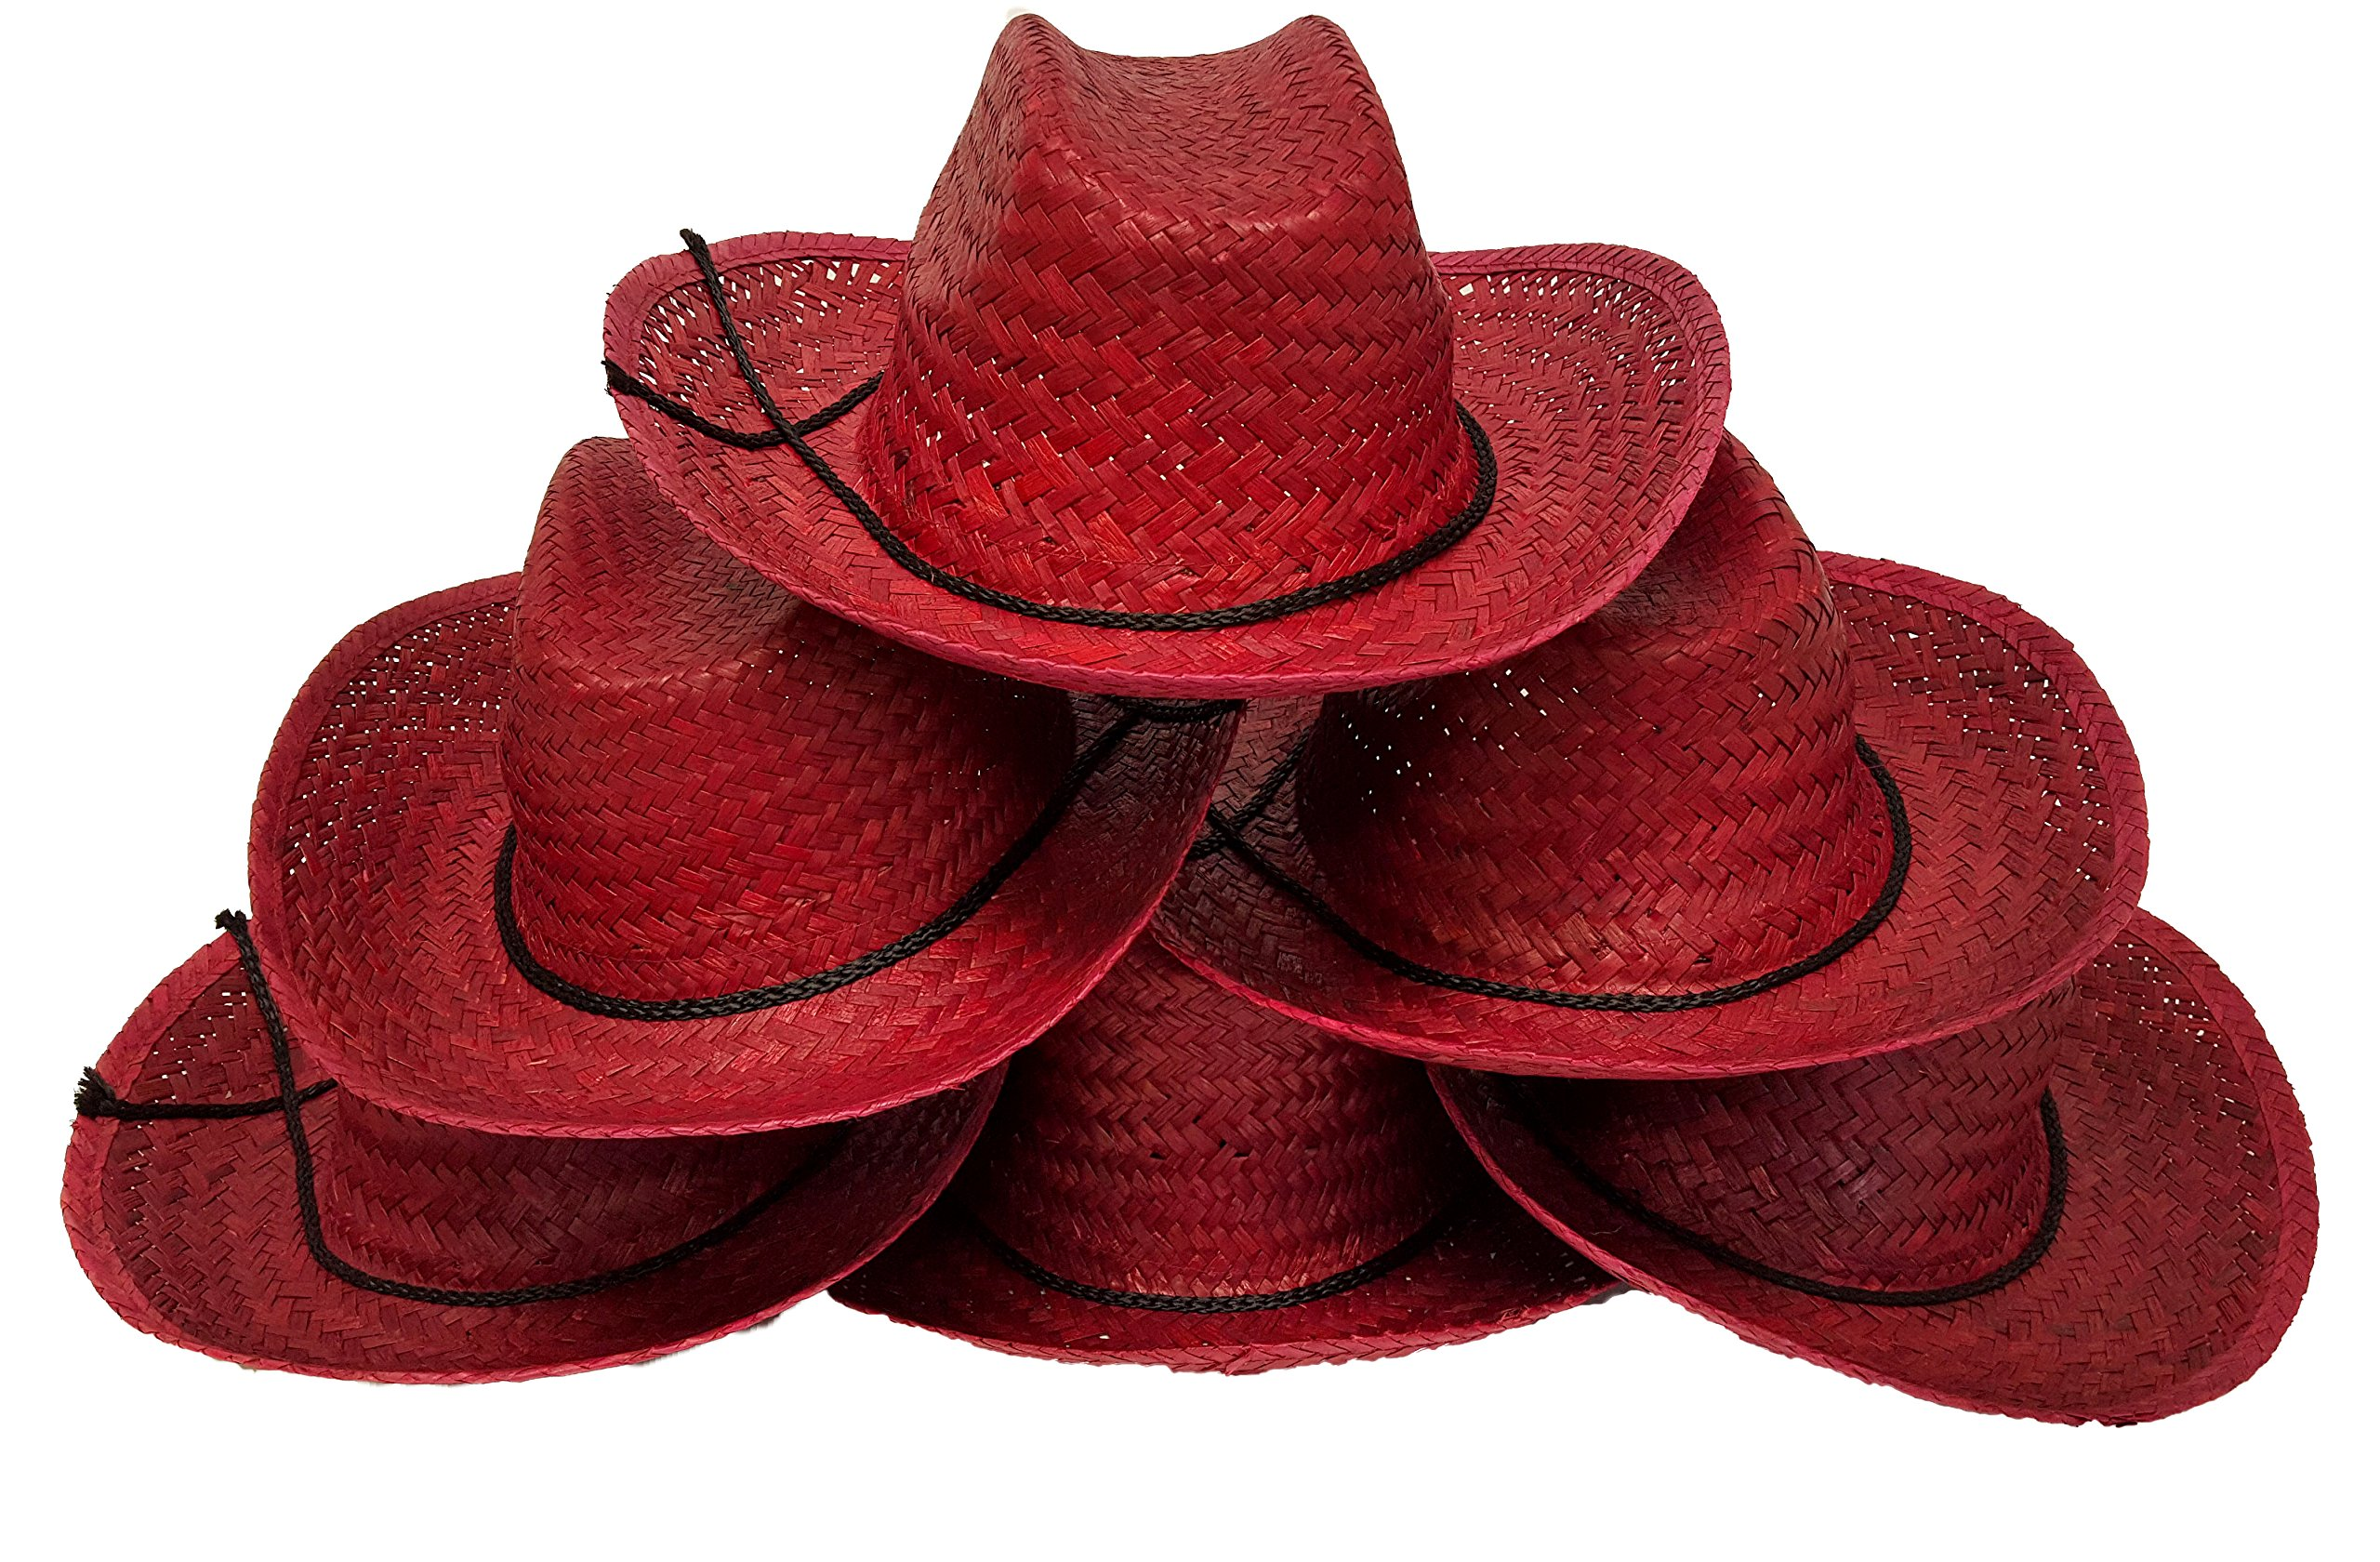 Cowboy Hats for Adults, Woven Grass Cowboy Hats, RED Color (12 Piece Pack) by Dondor